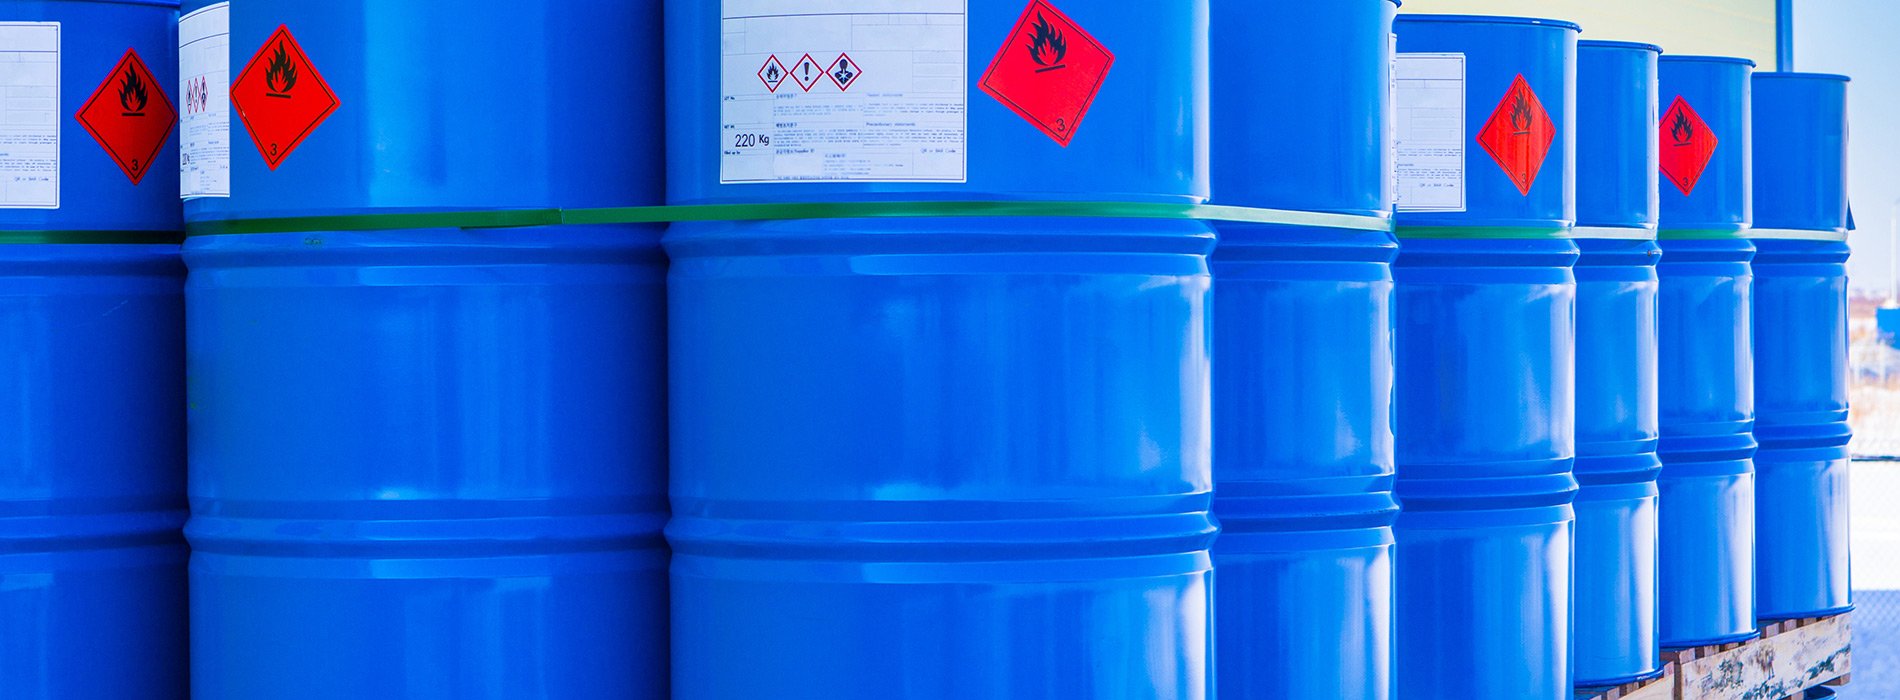 label products ghs labels barrels global harmonized system dls